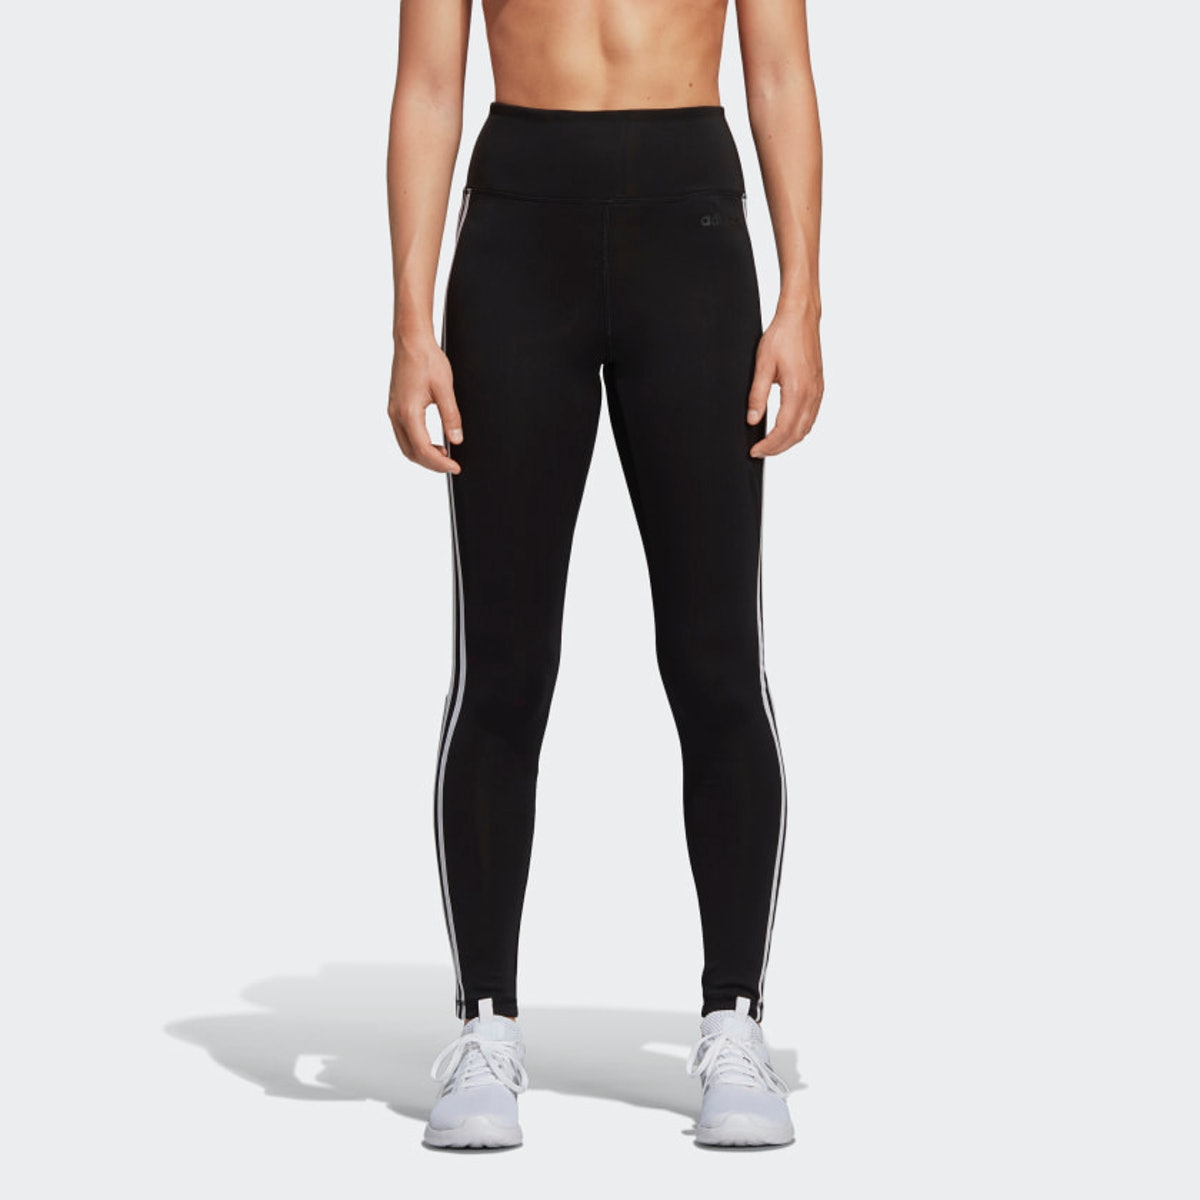 Designed 2 Move 3-Stripes High-Rise Long Tights